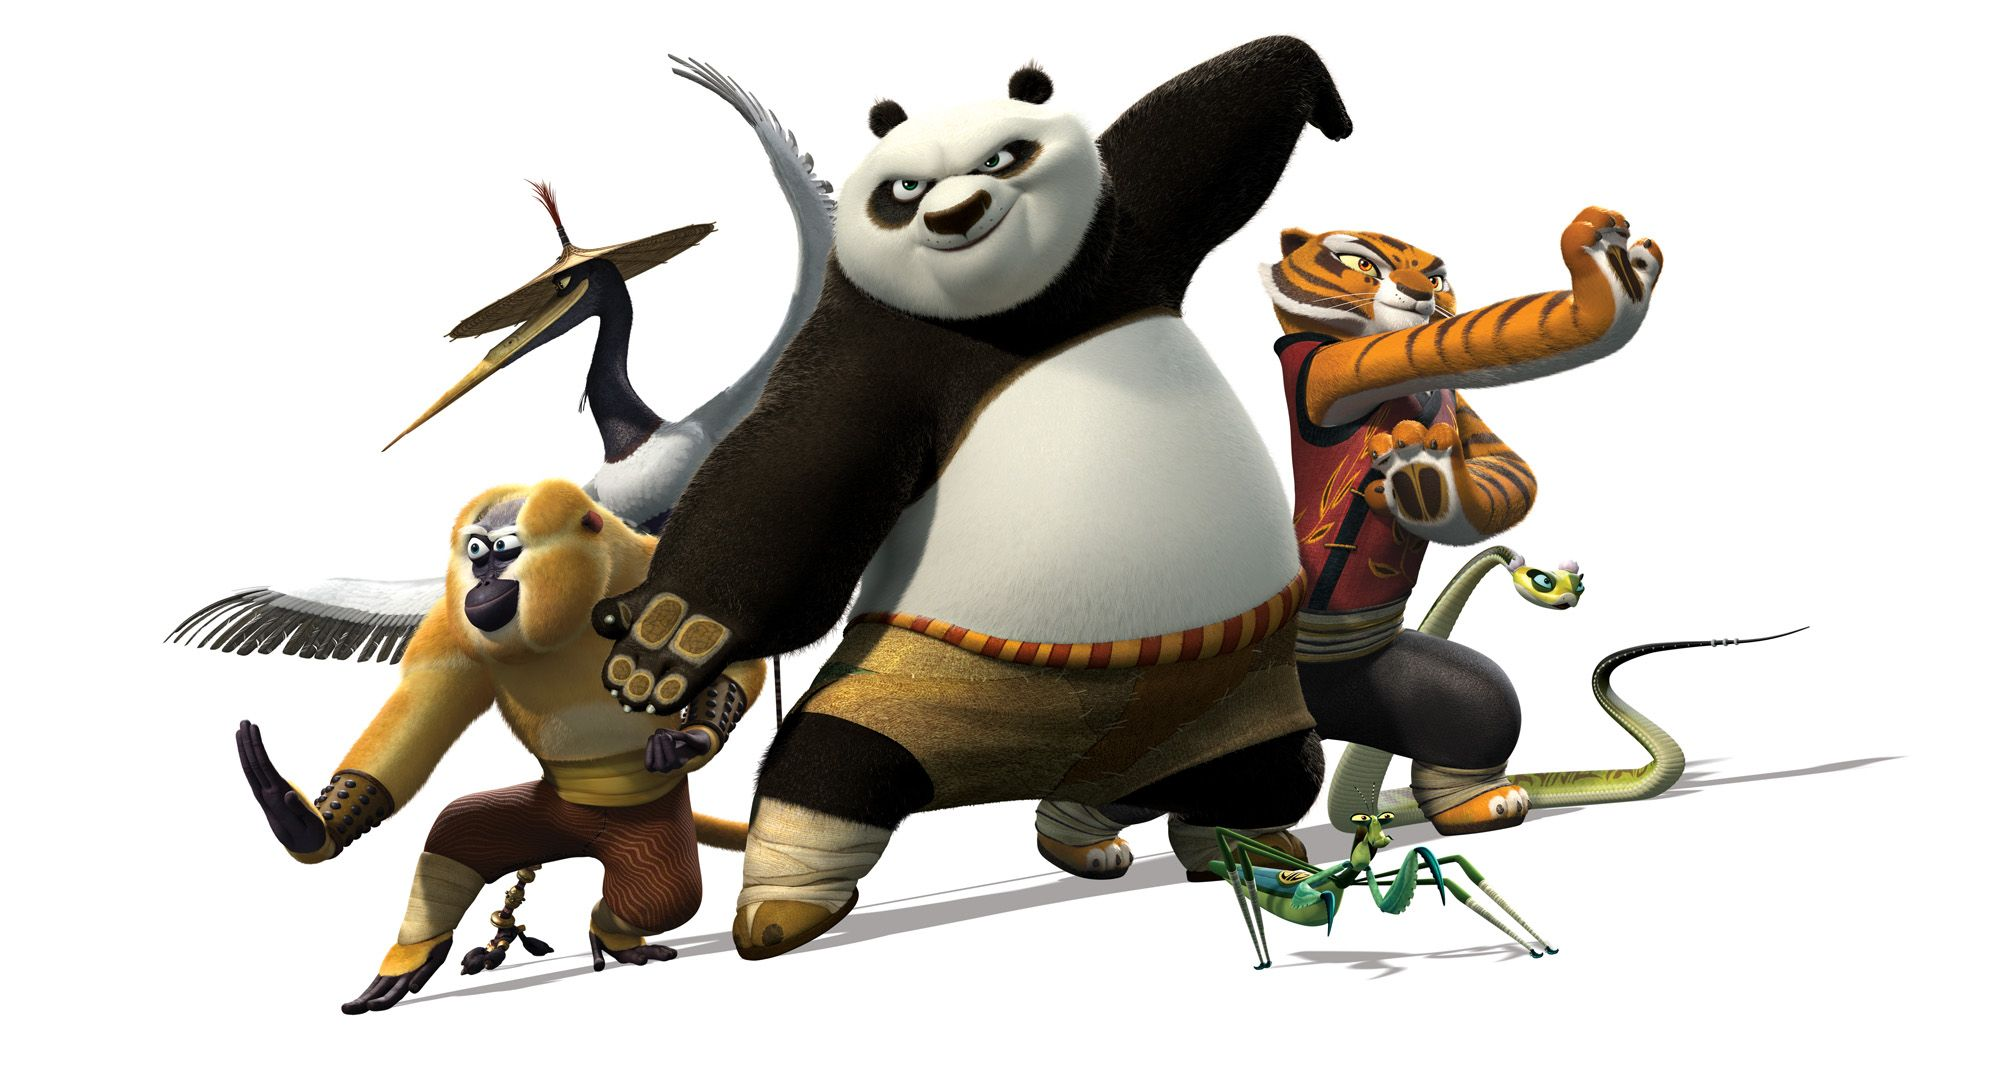 http://images.wikia.com/kungfupanda/images/4/46/Kp2cast.jpg